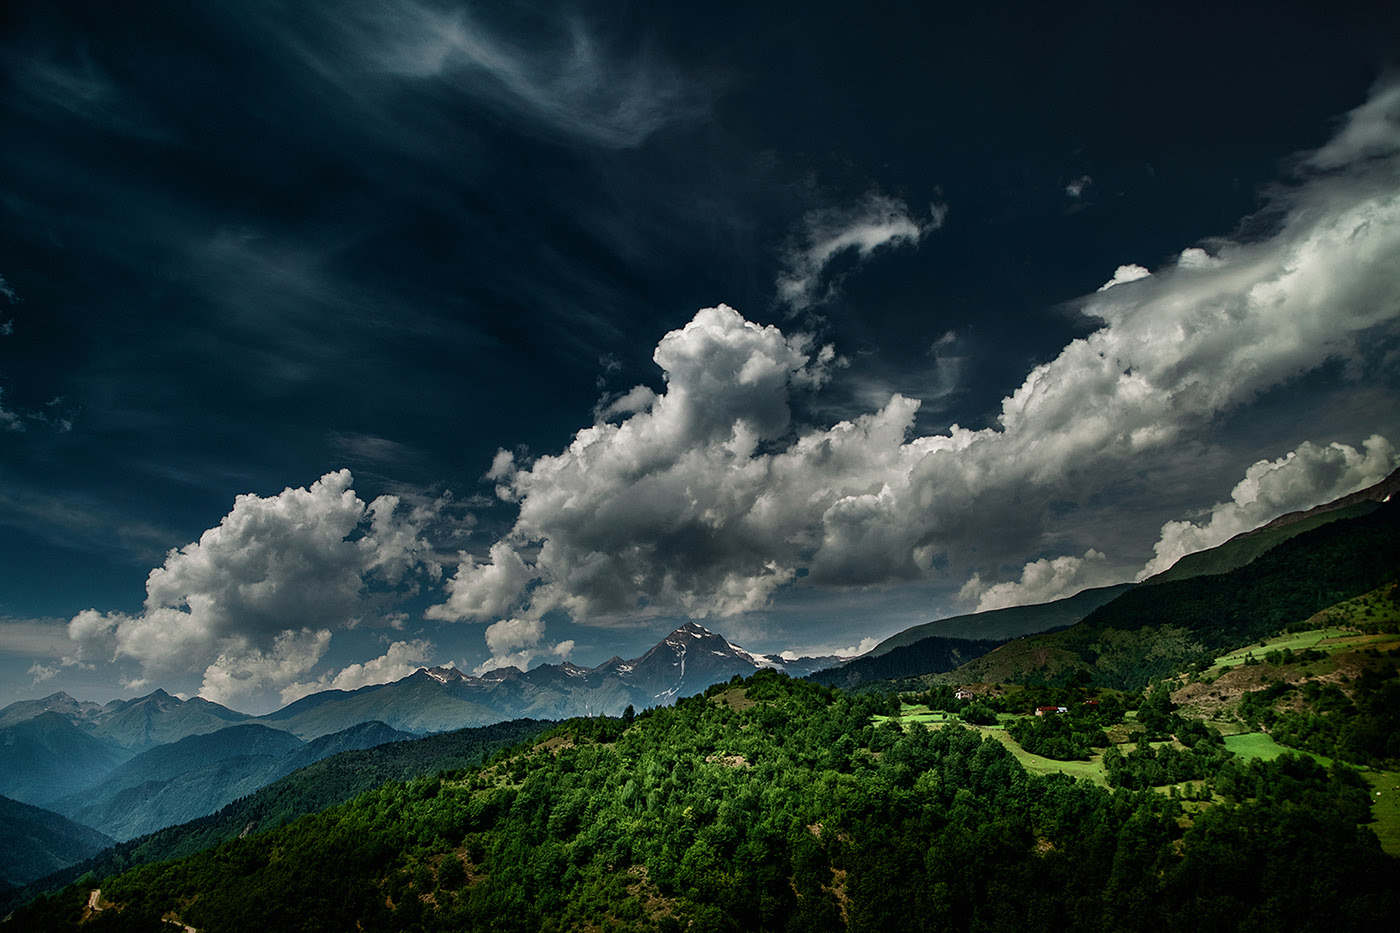 nature photography skies by victor eredel